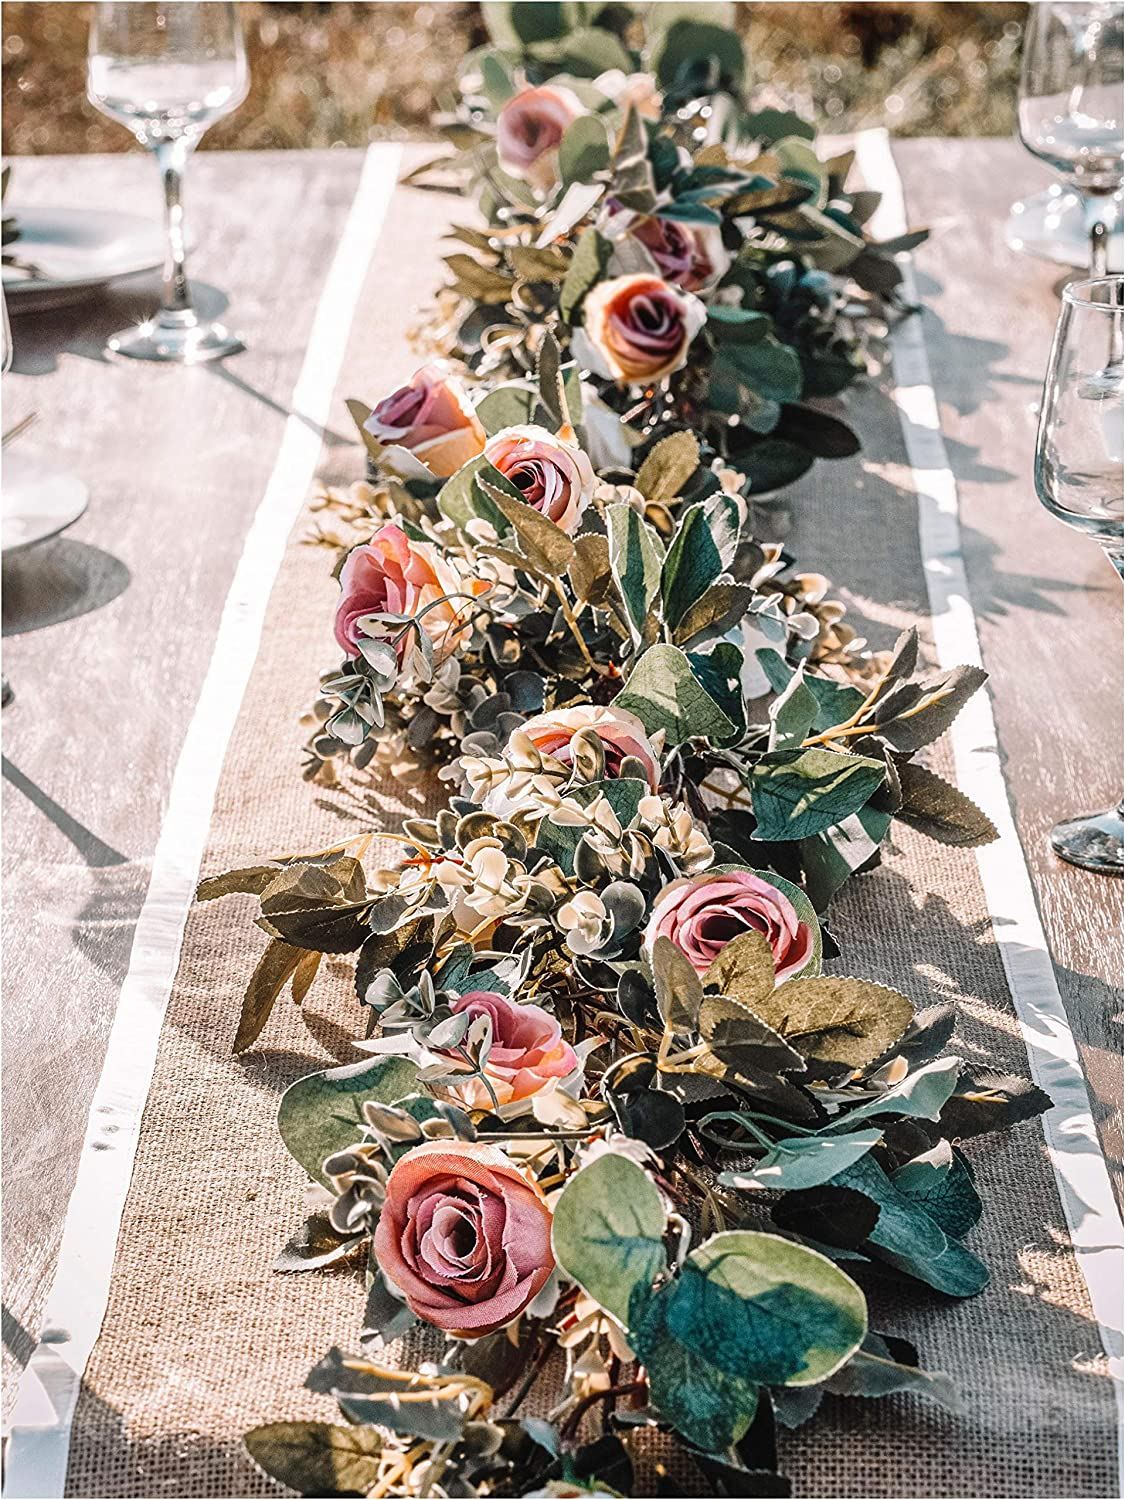 WILDIVORY Eucalyptus Garland with Flowers - 17 Pink Roses - Lush, Natural Looking Eucalyptus and Flower Garland Decor, Floral Garland Greenery for Wedding Table Decor with Abundant Vines, Rose Leaves